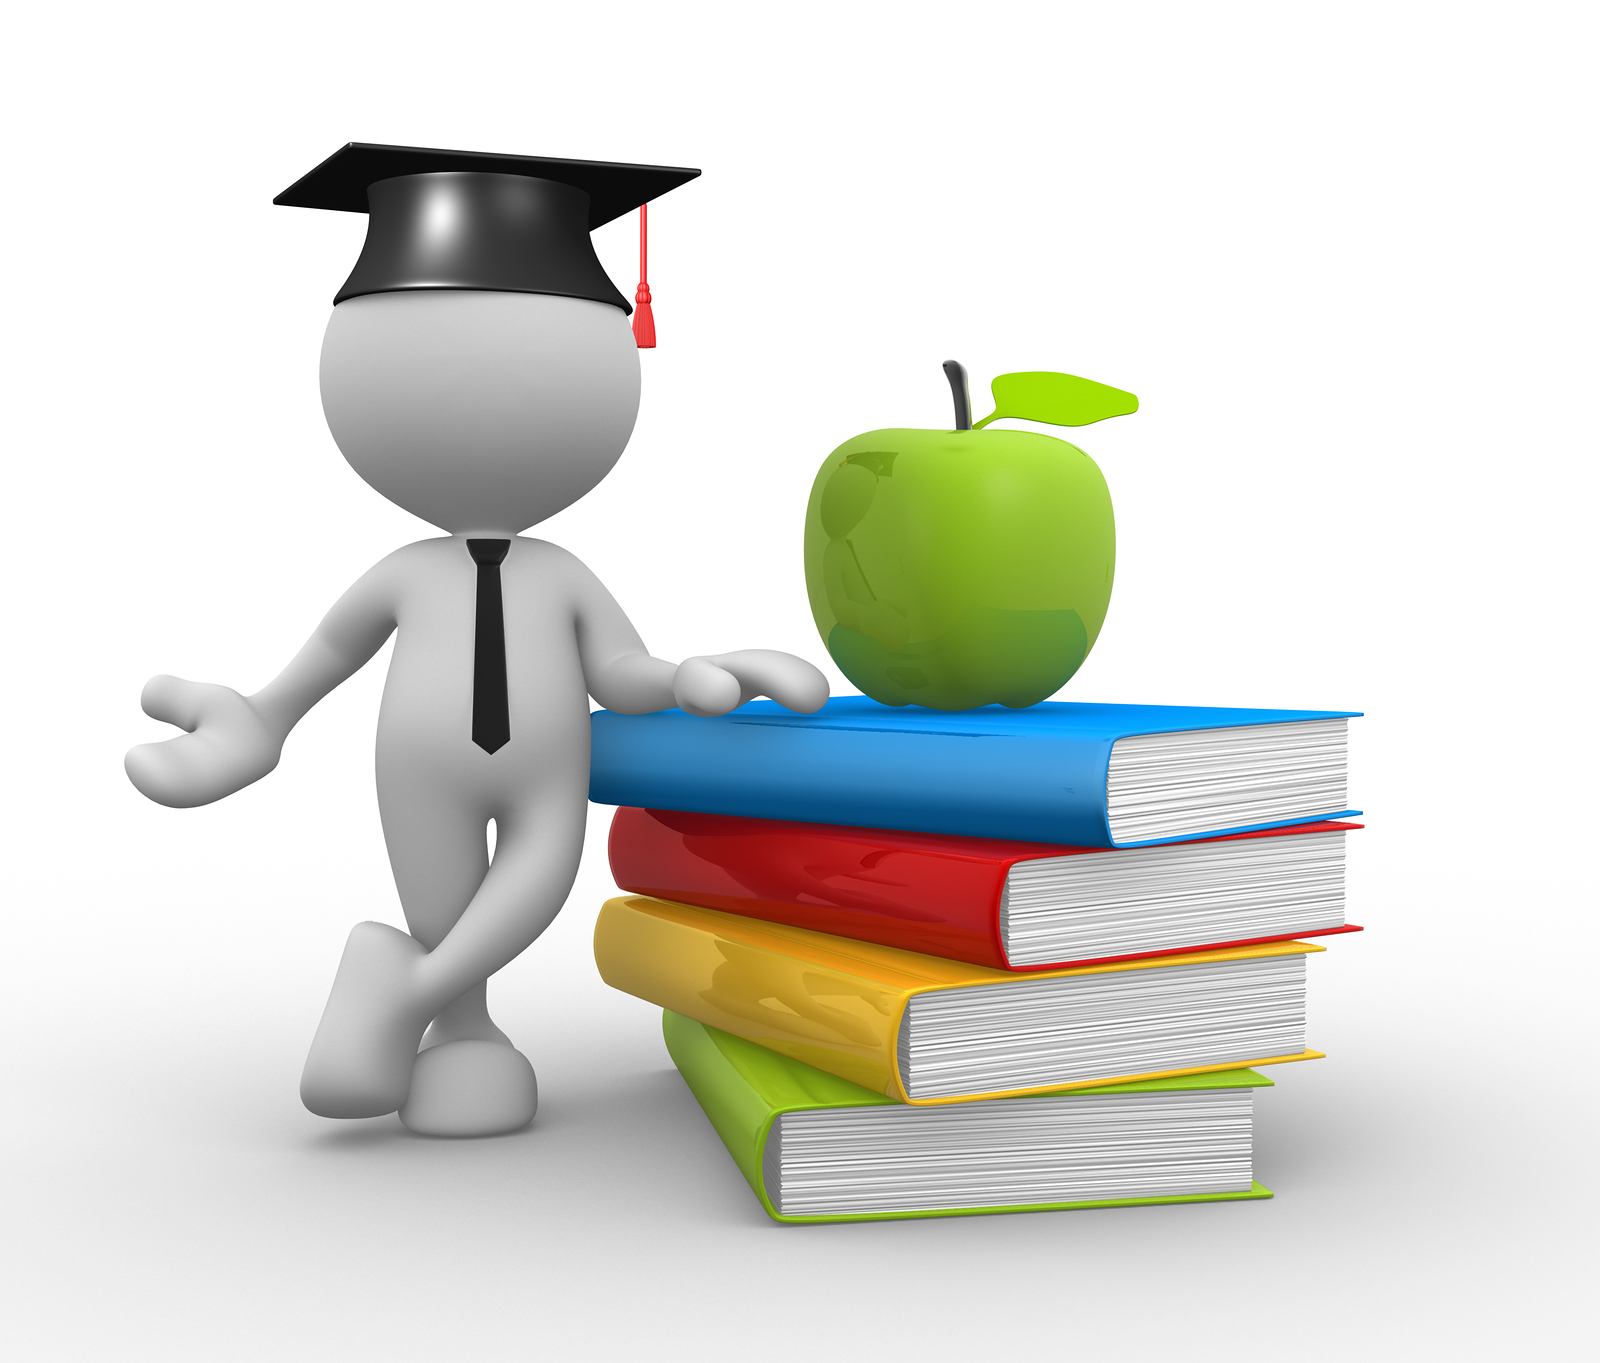 3d people - man person with pile of books and an apple. Graduation cap.